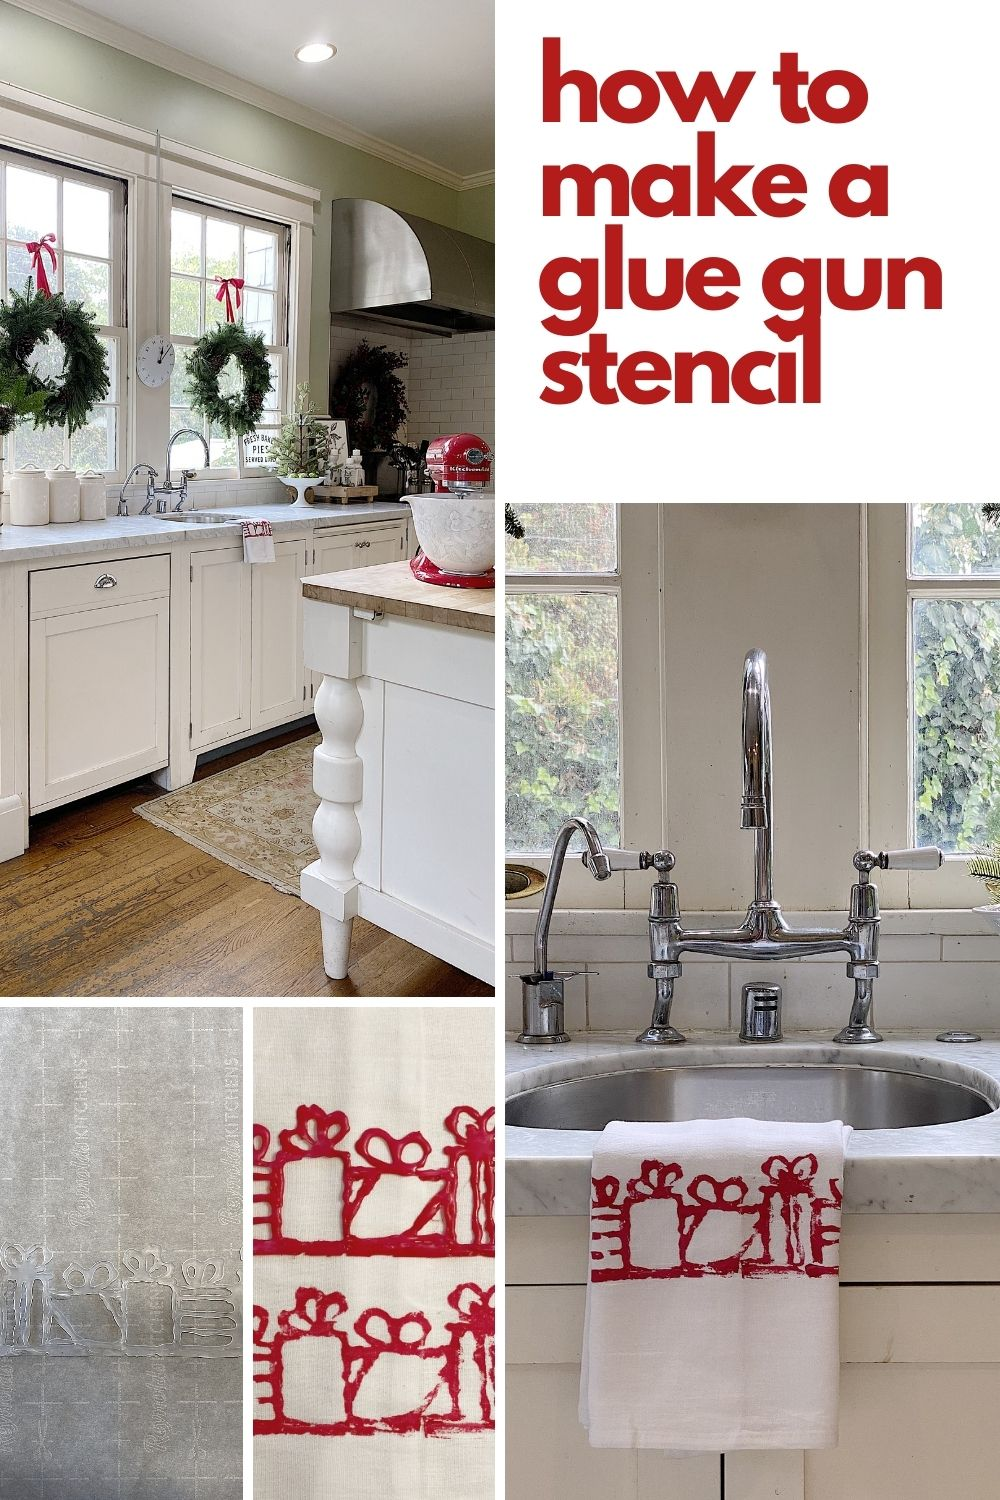 I love to make stencils with my glue gun. It's easy, inexpensive, and looks great. Check out these Christmas Kitchen towels that I made for Christmas.